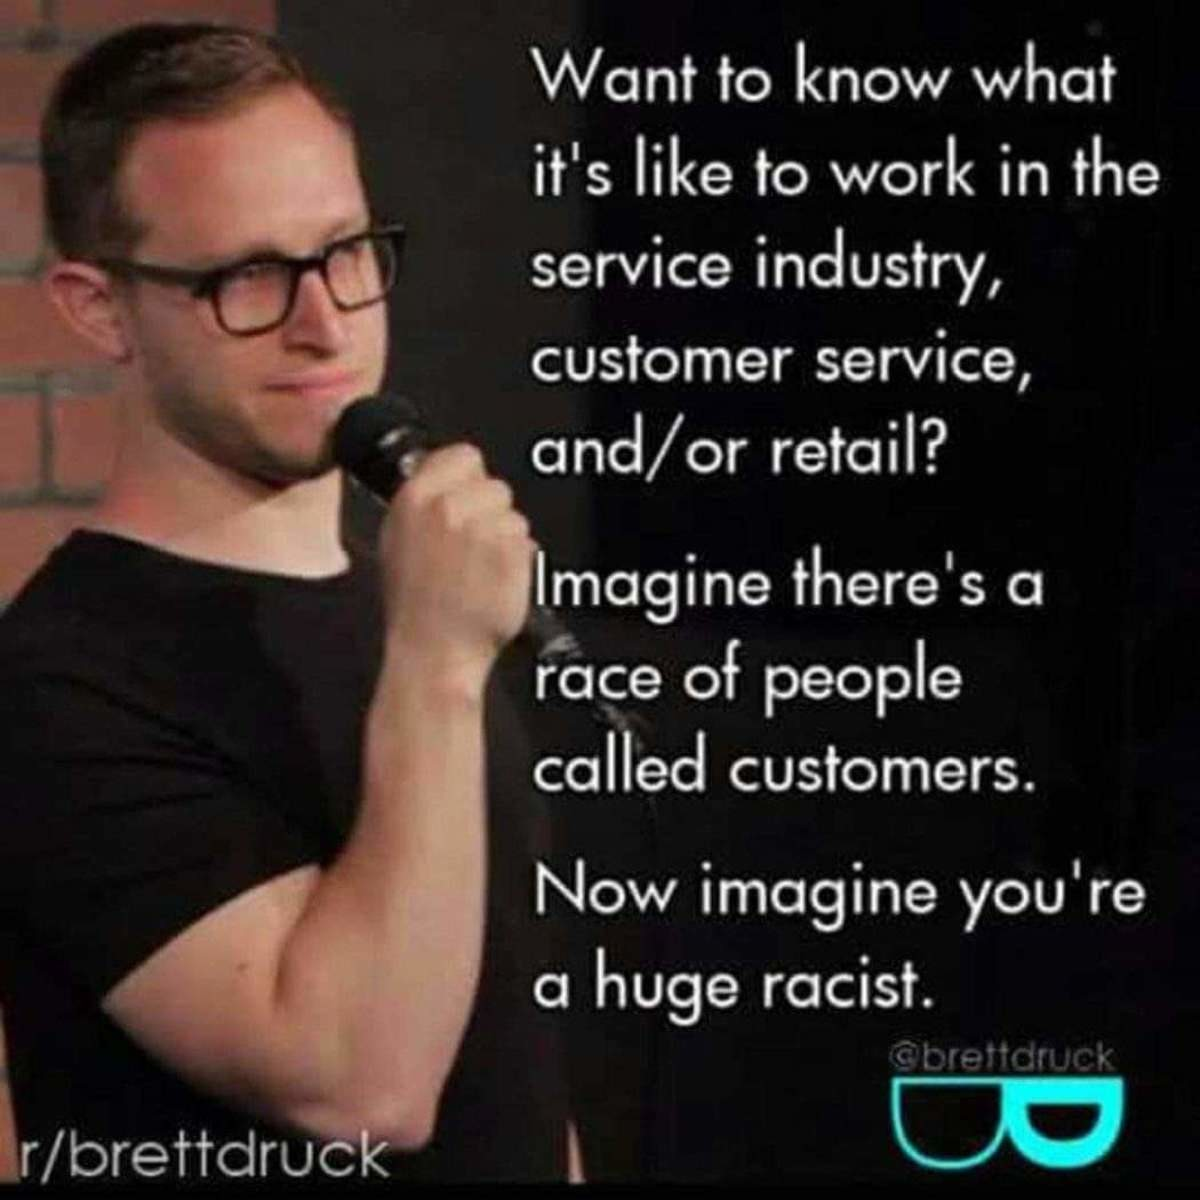 Customers sucj. .. thats backwards imagine you are a certain race and customers are racist